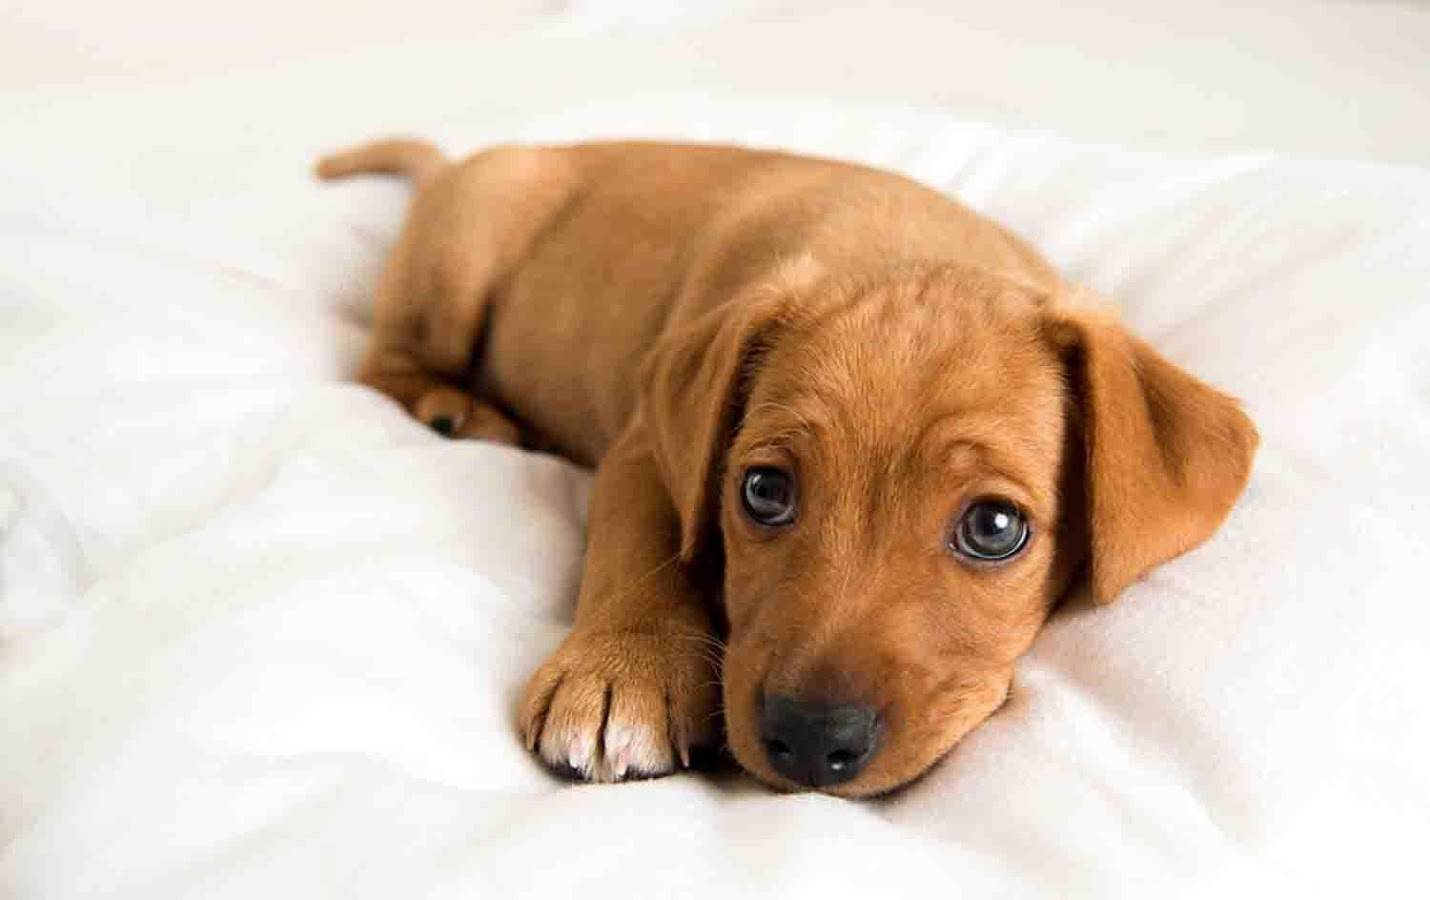 Cute Dachshund Puppies Pictures likewise 2 in addition Dog Days Of Summer Party together with Dog Happy Adding Puppy To Family besides Dachshund Wiener Dog Figurine 18p. on weiner dogs playing